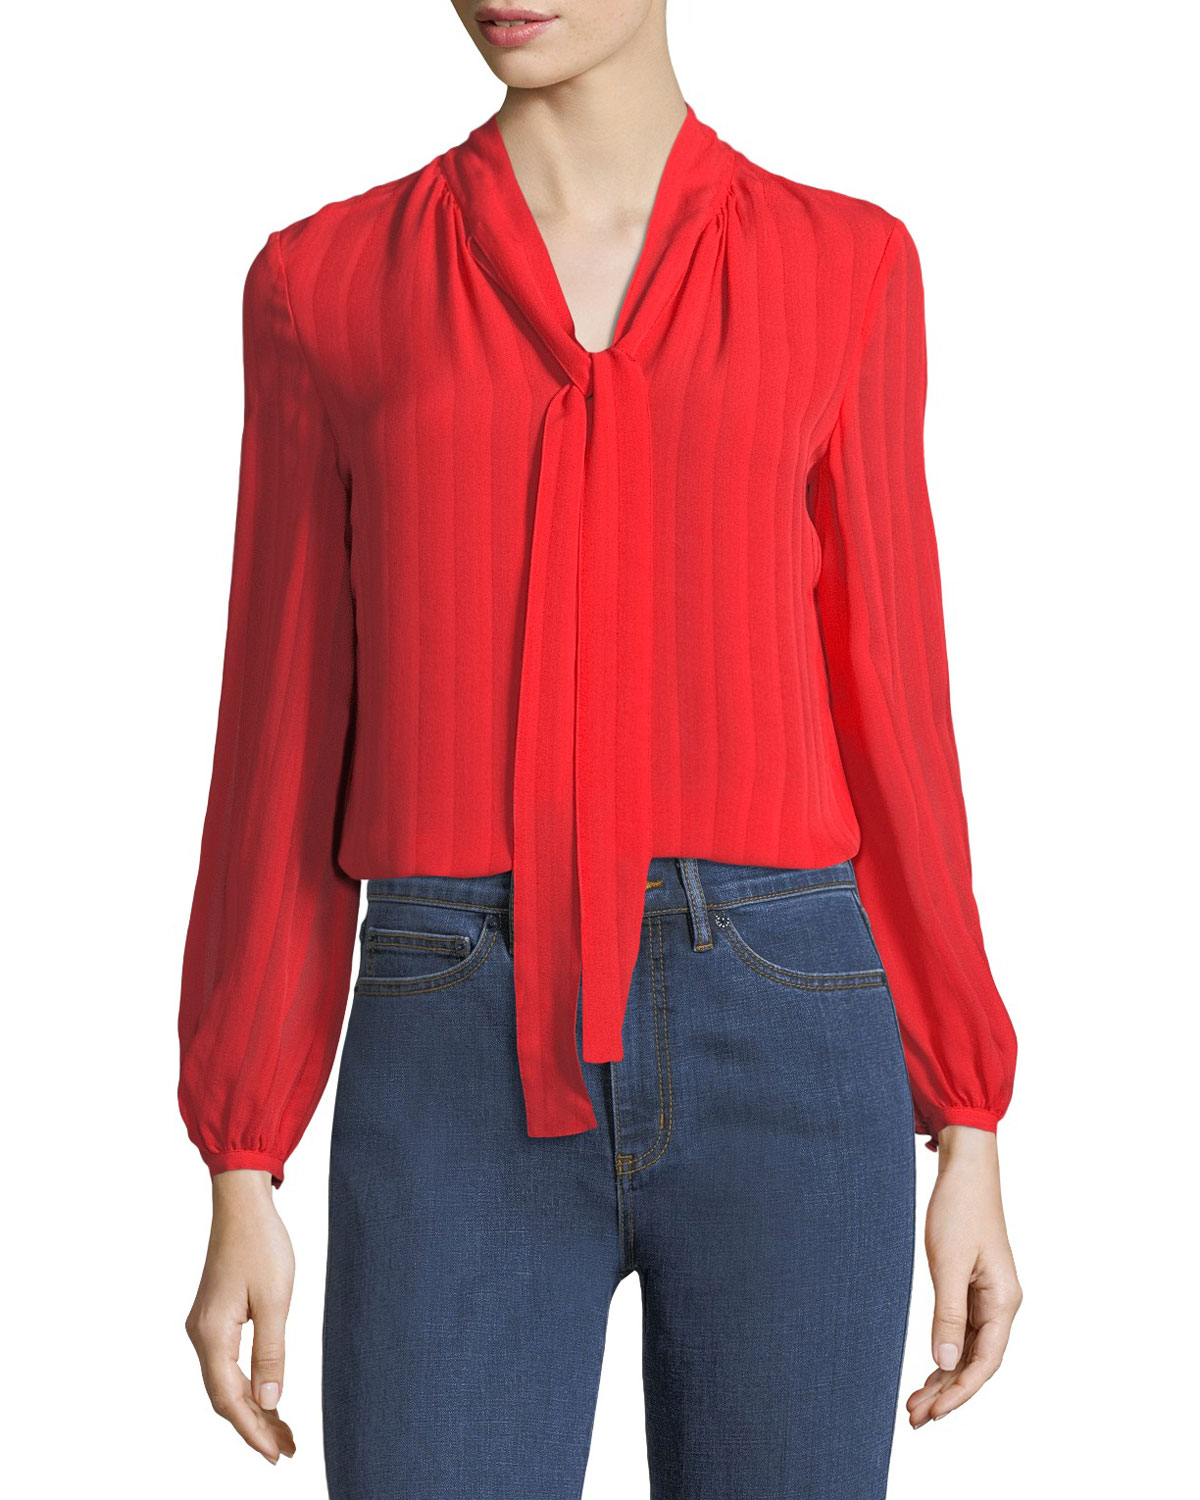 44a6f5d4fafd Tory Burch Emma Self-Tie Bow Blouse